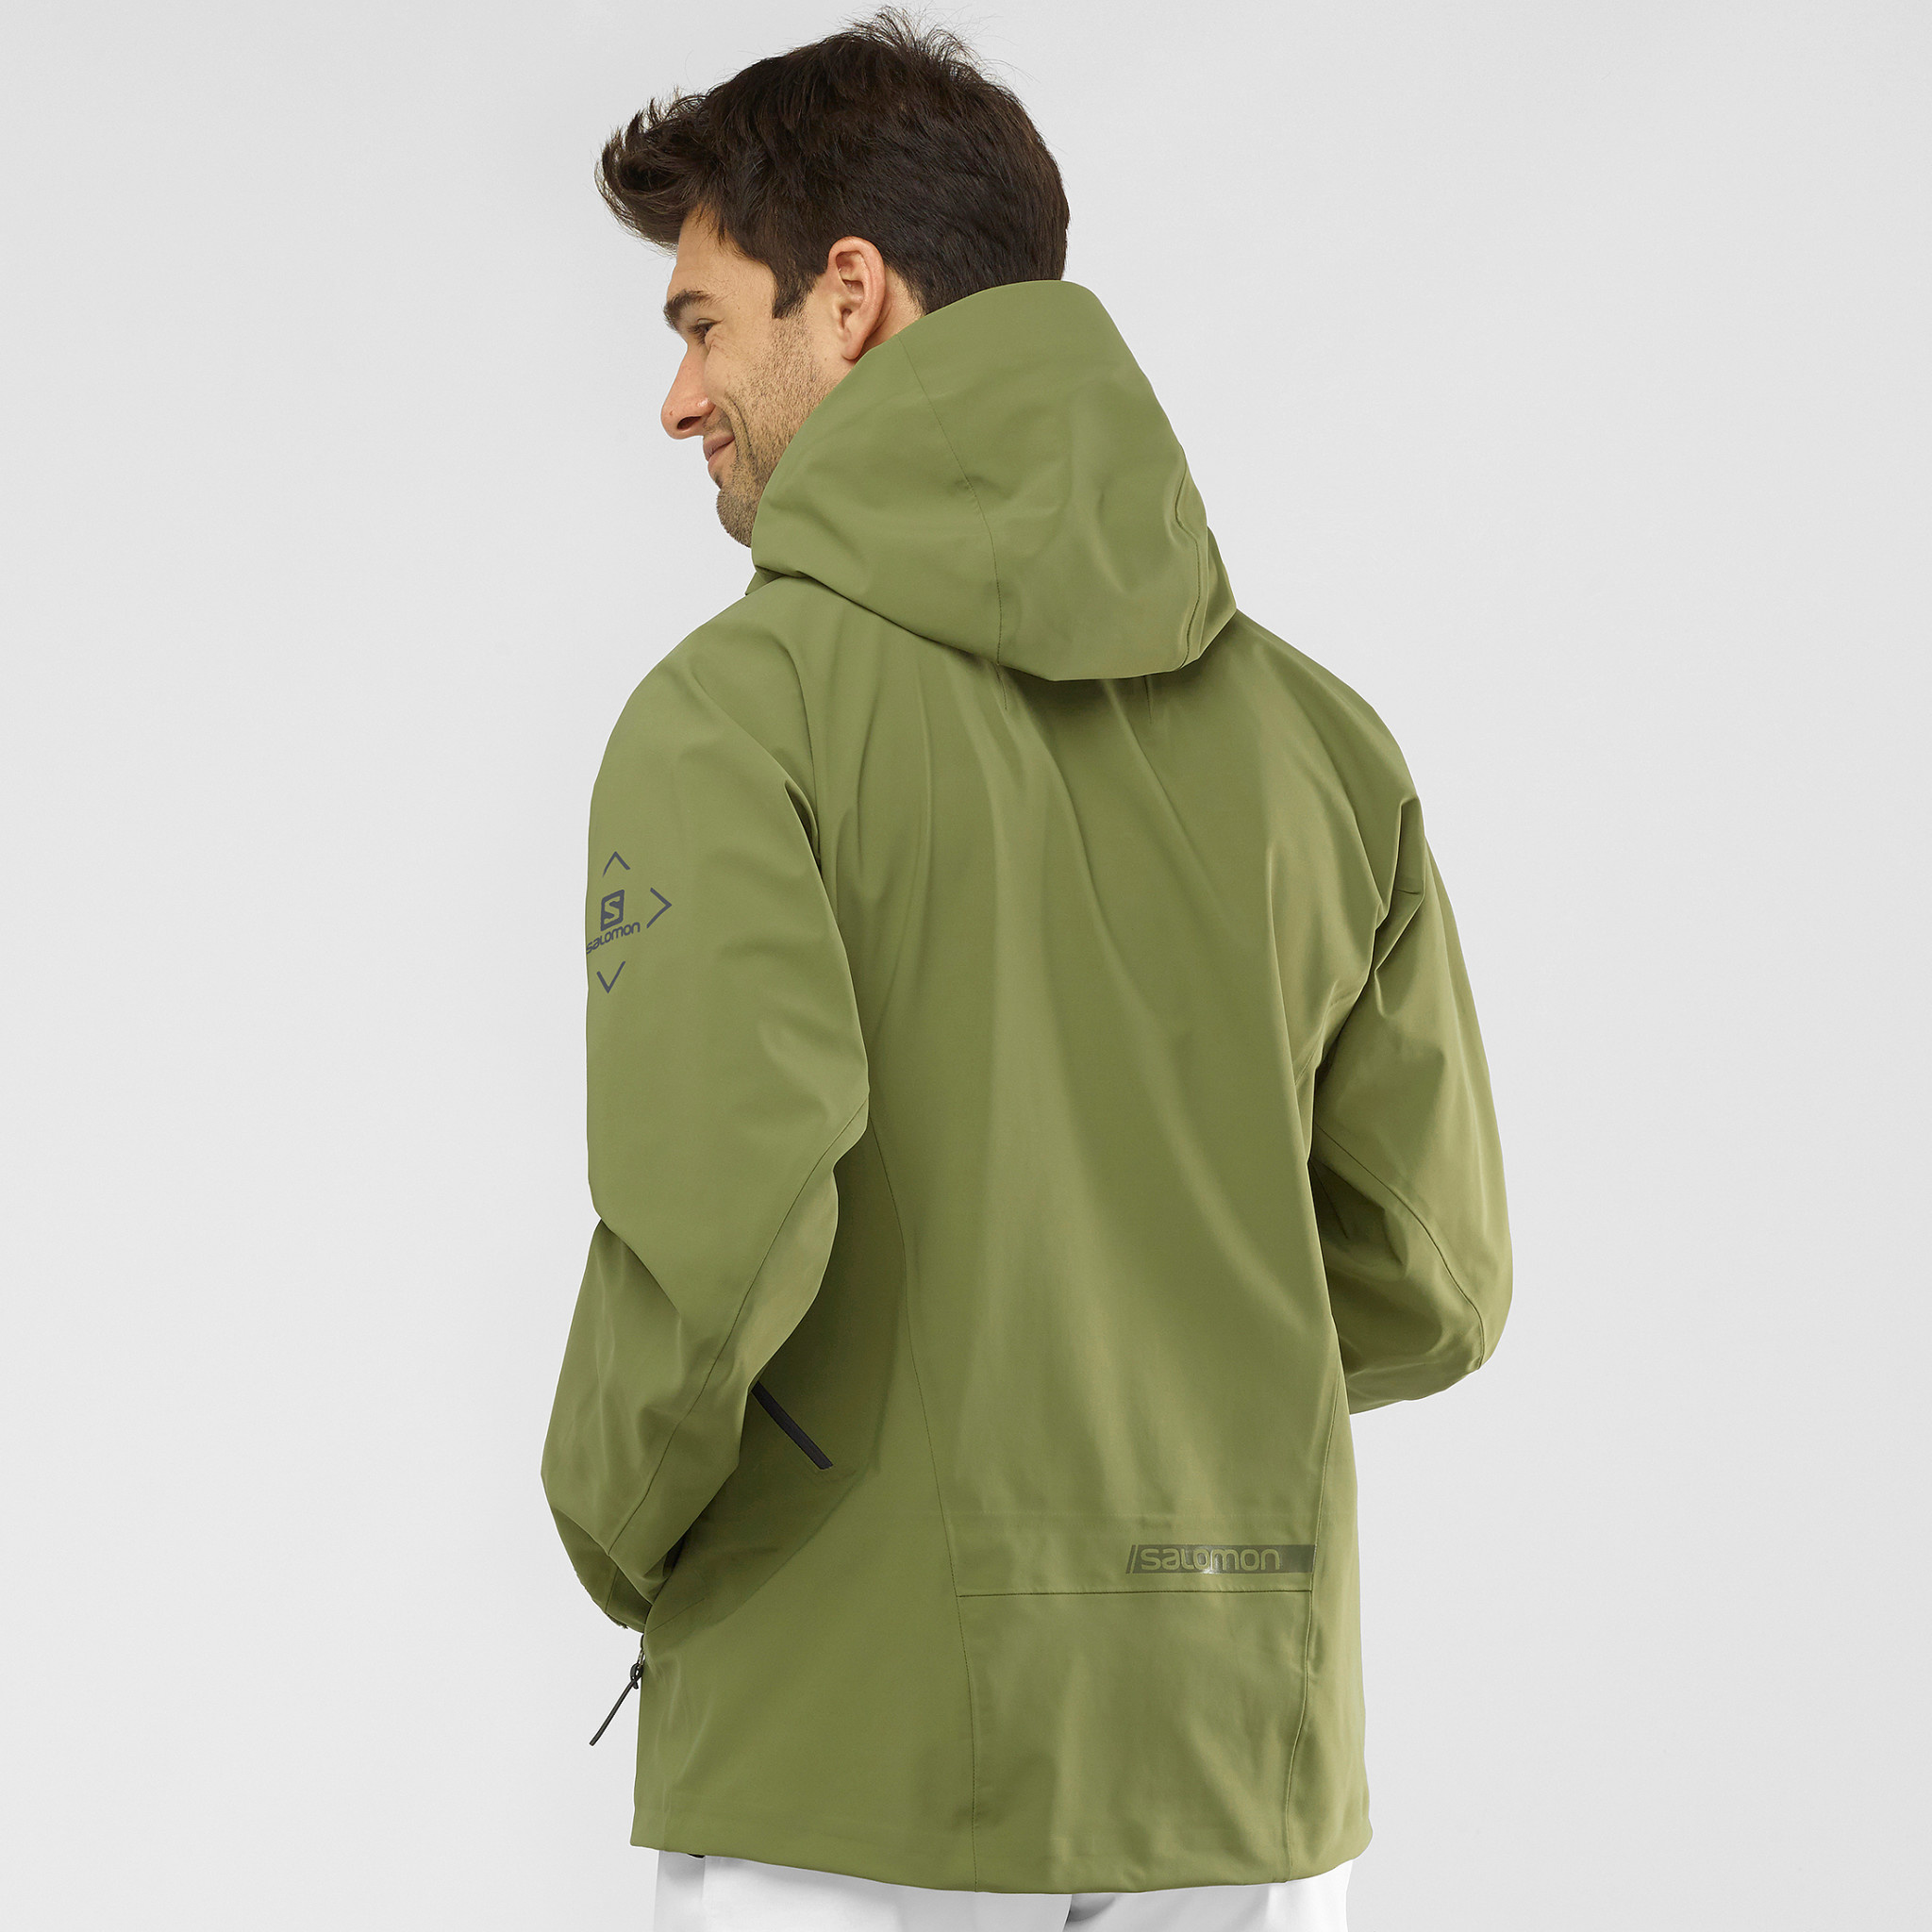 OUTLAW 3L SHELL JACKET M-4